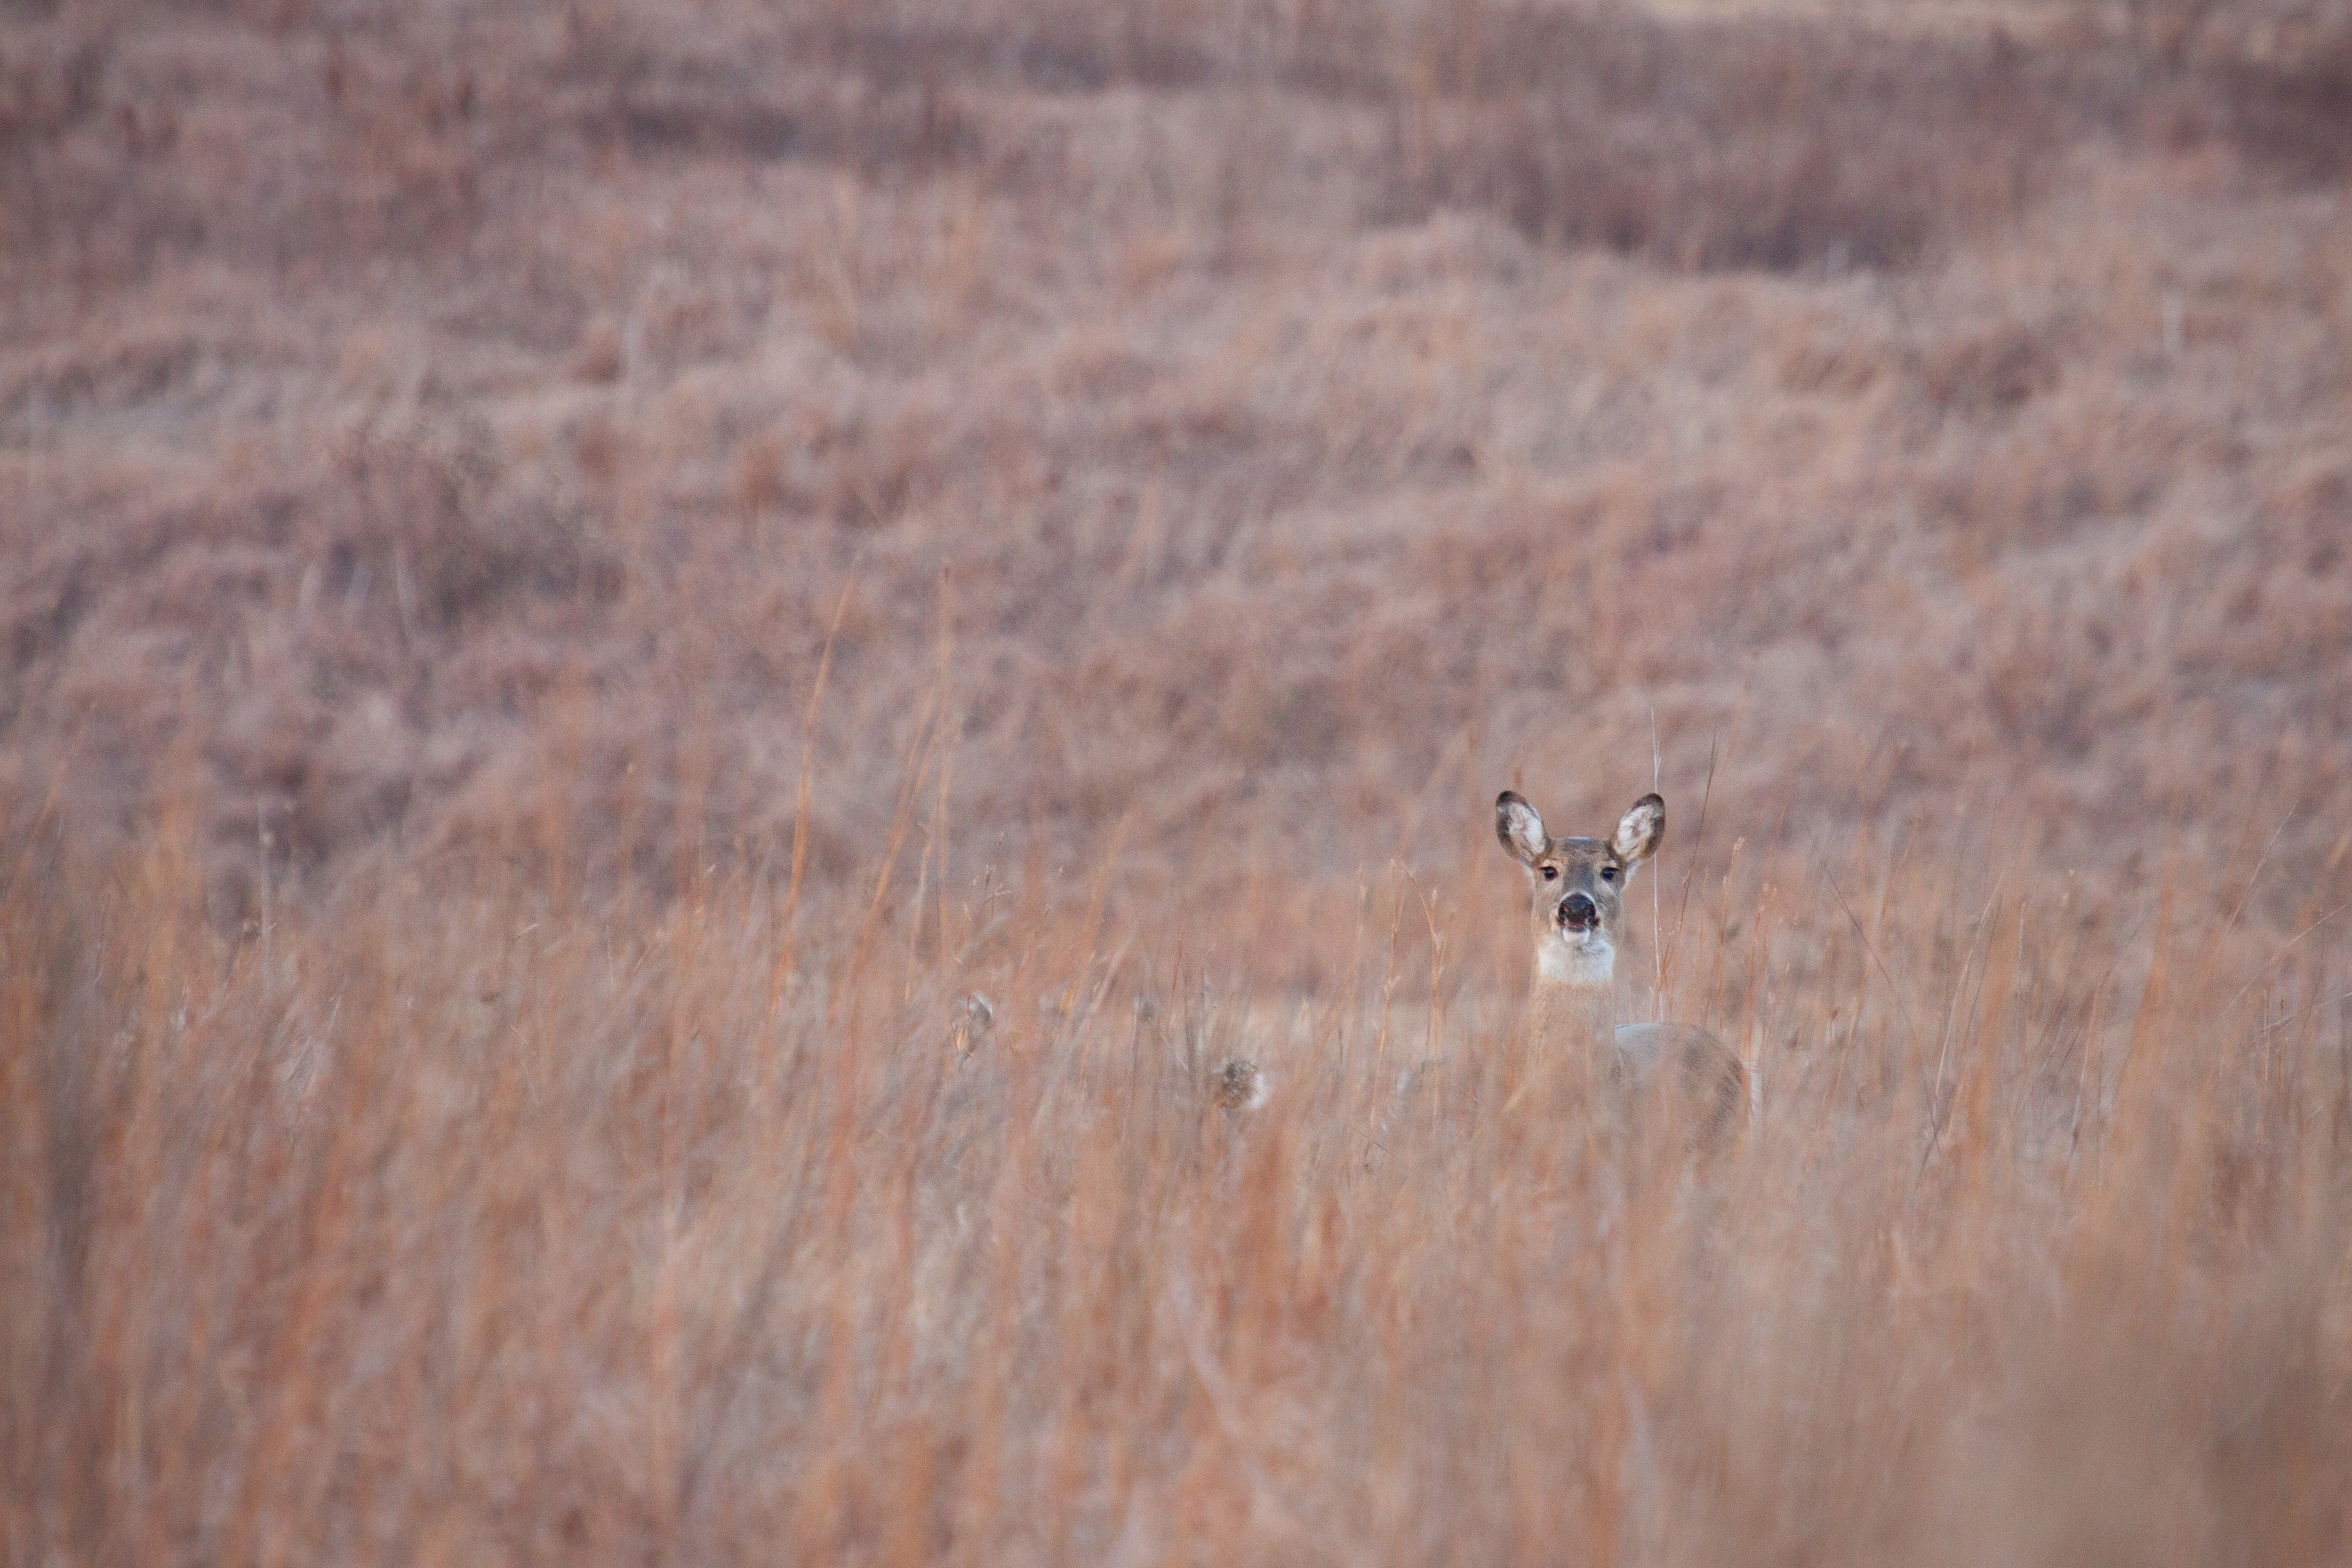 Deer in Tallgrass by Adrian Olivera